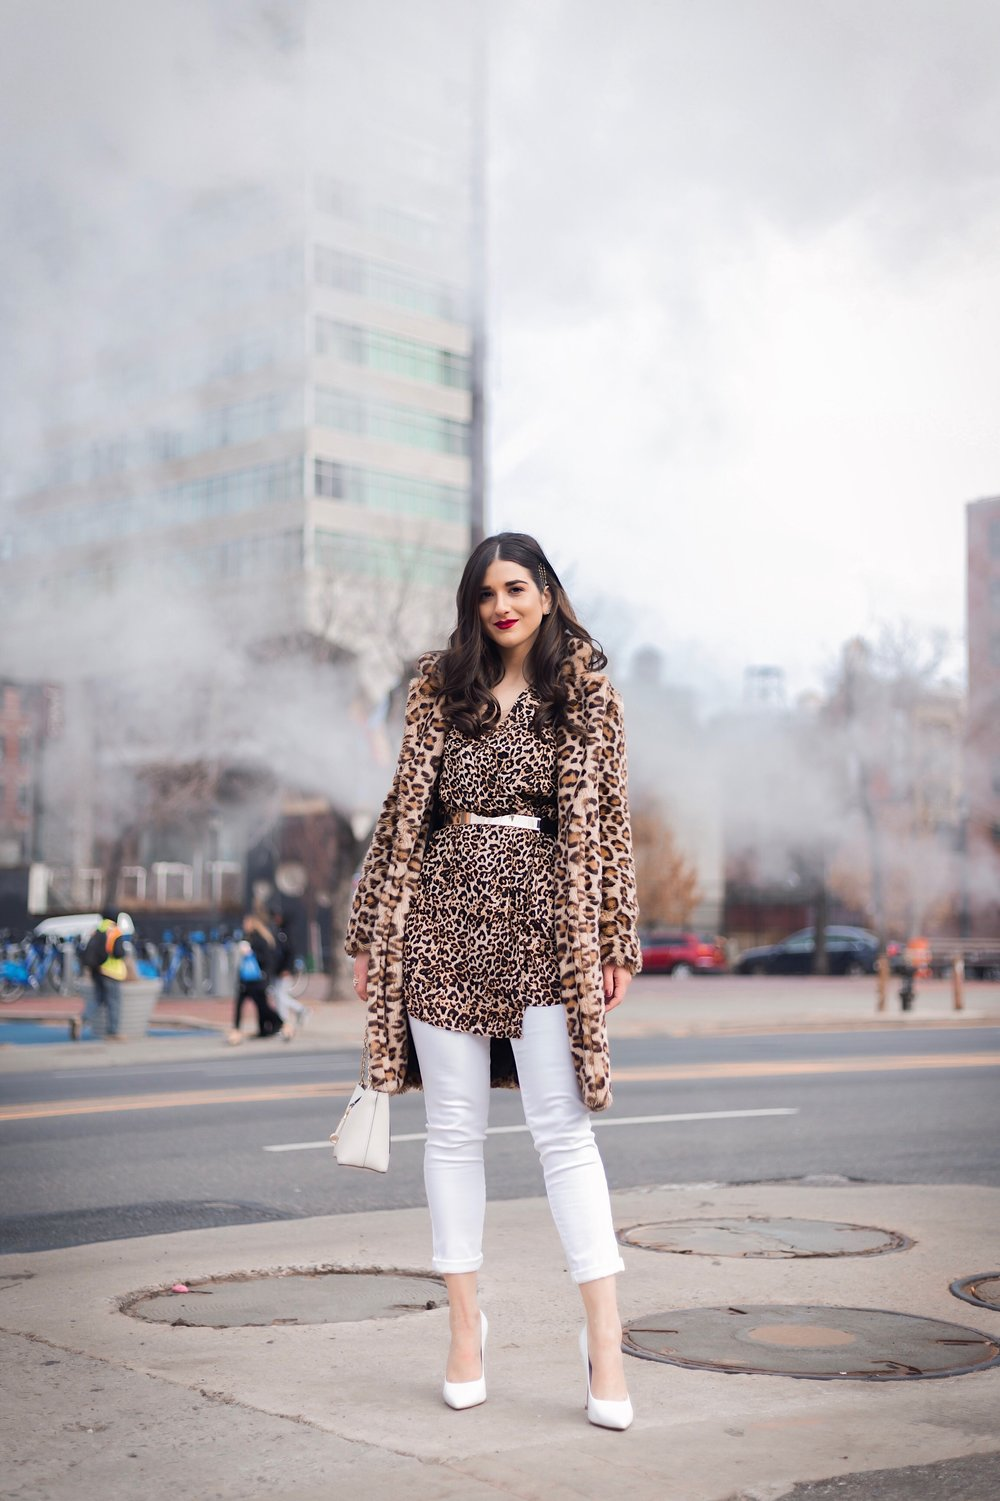 Dressing Up My Democracy Denim Esther Santer Fashion Blog NYC Street Style Blogger Outfit OOTD Trendy Shopping White Jeans Leopard Top Coat Inspo Bobby Pins Hair Trend White Heels Chaya Ross Photography Gold Belt Wear Cream Chain Small Bag Inspiration.jpg